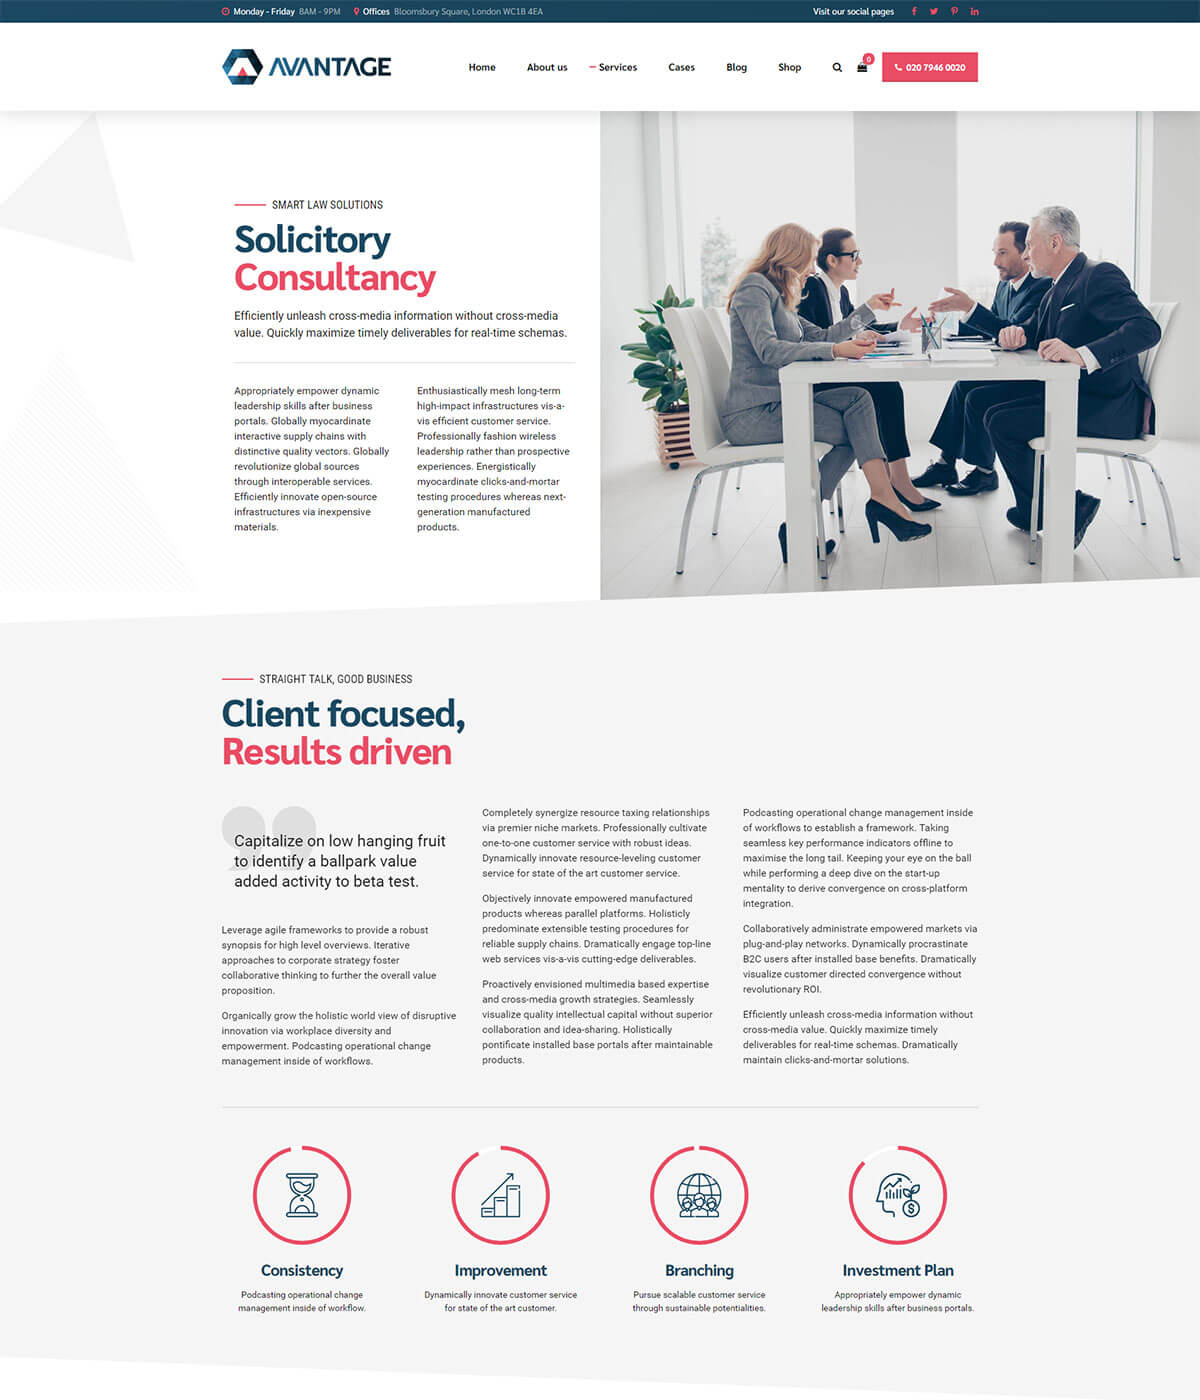 https://avantage.bold-themes.com/wp-content/uploads/2019/05/business-07-single-service.jpg